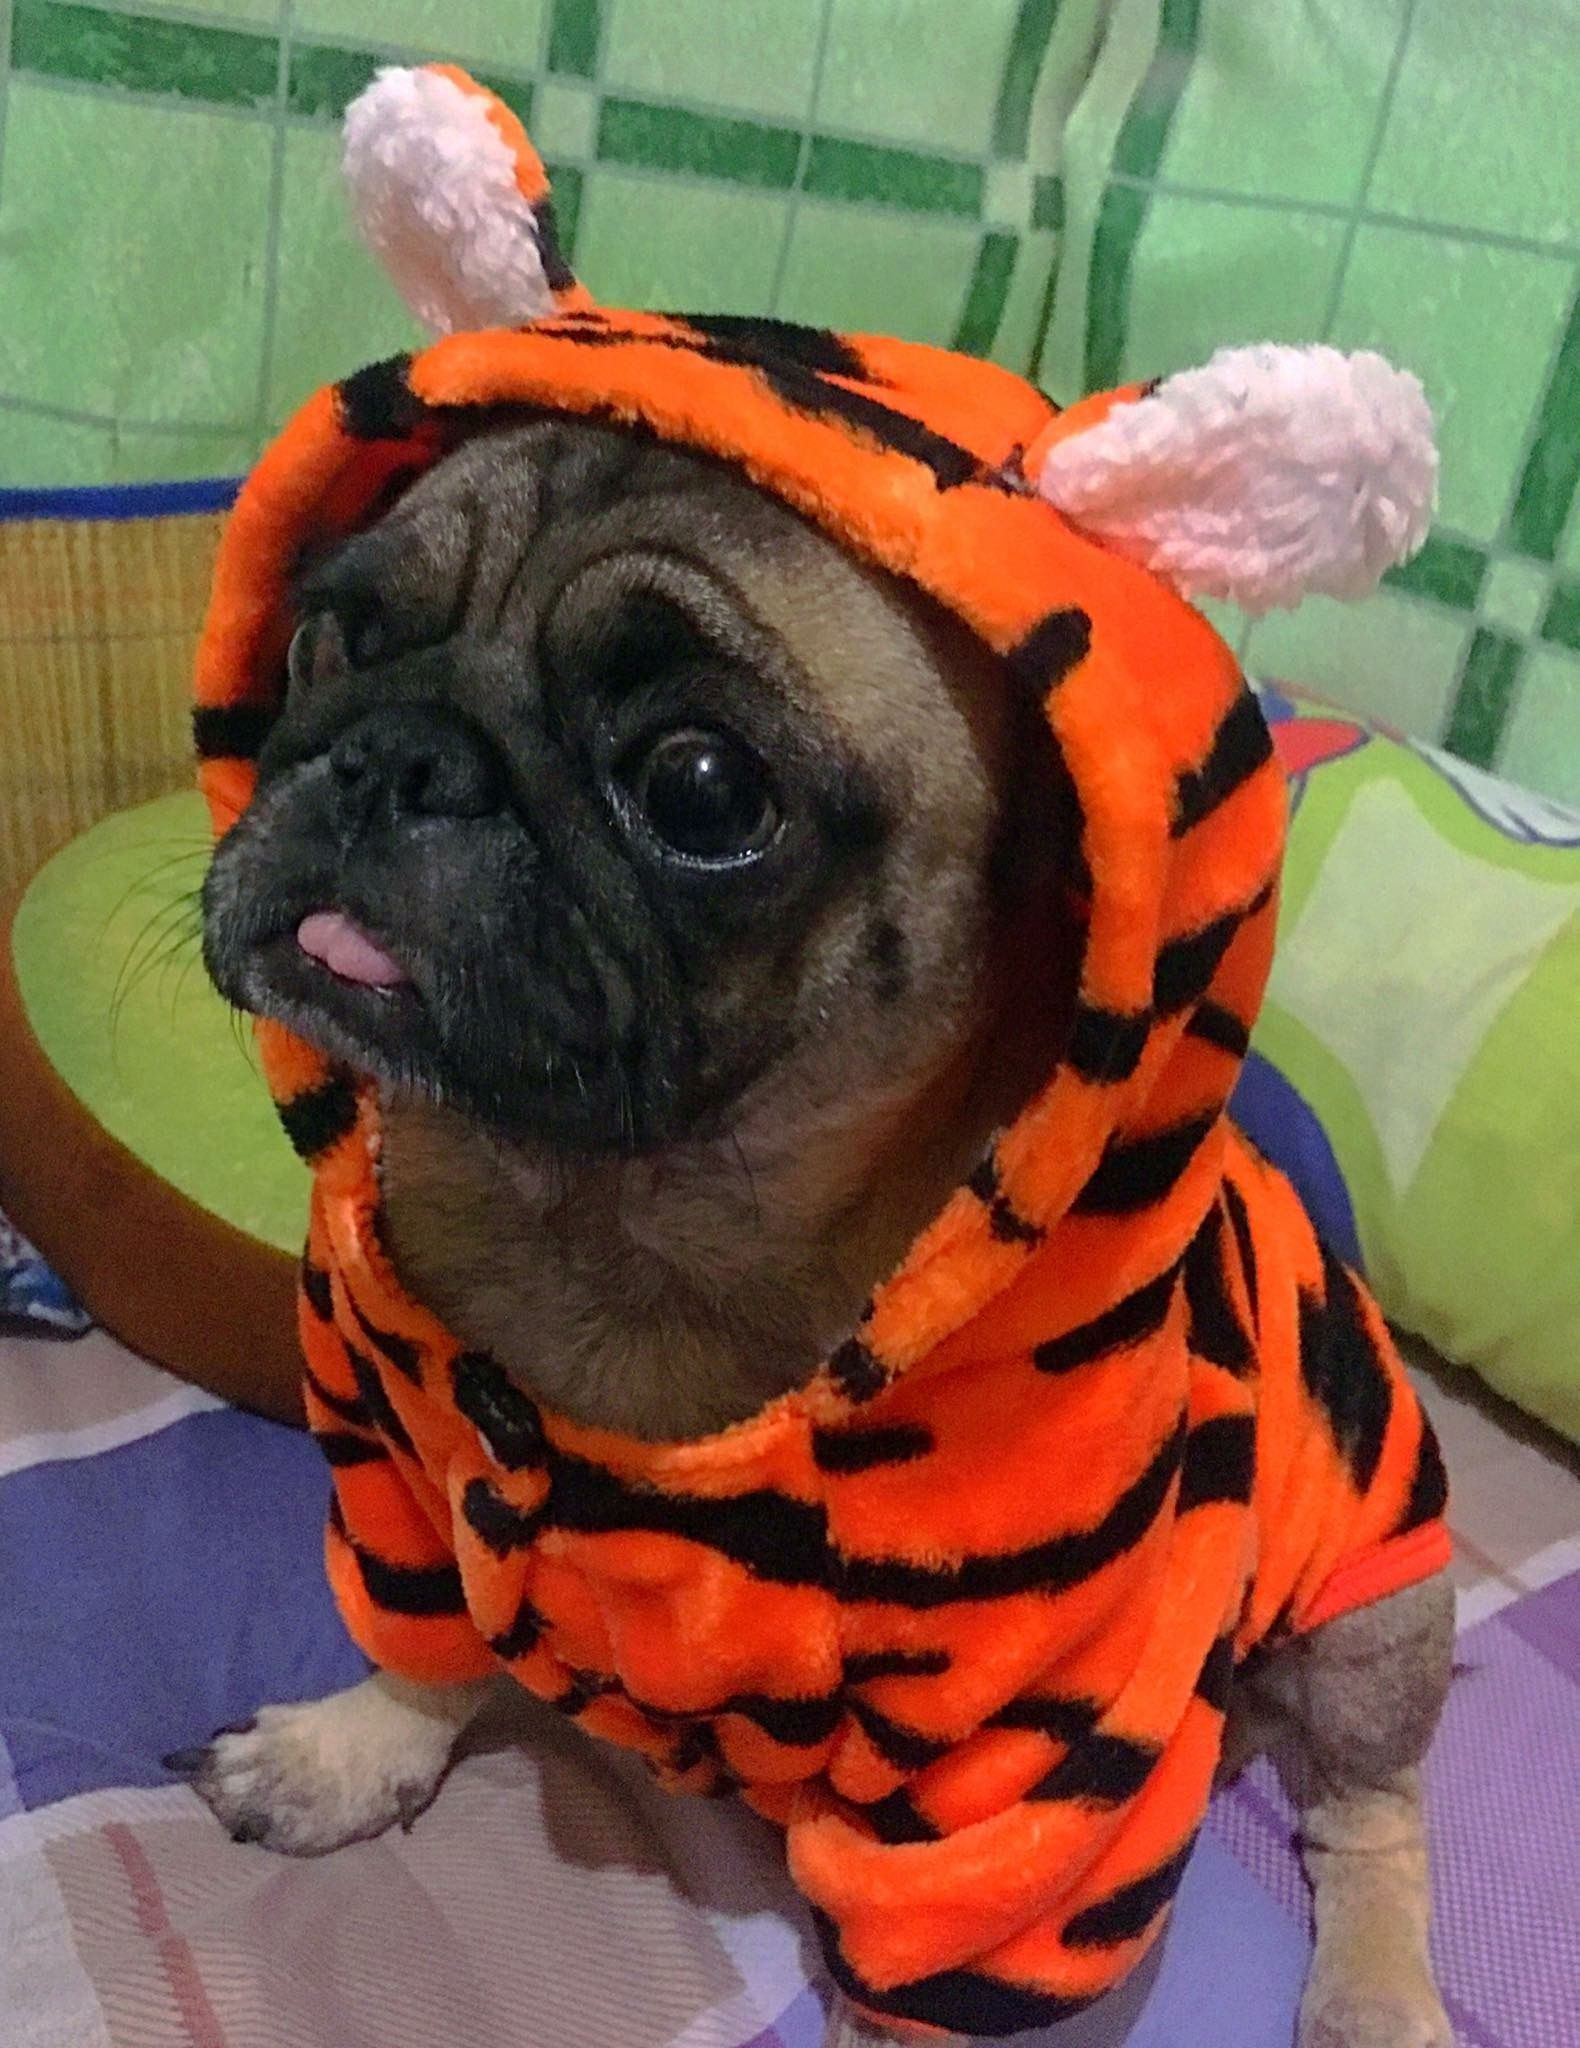 Once I Was A Tiger Pugs In Costume Cute Pugs Pet Costumes